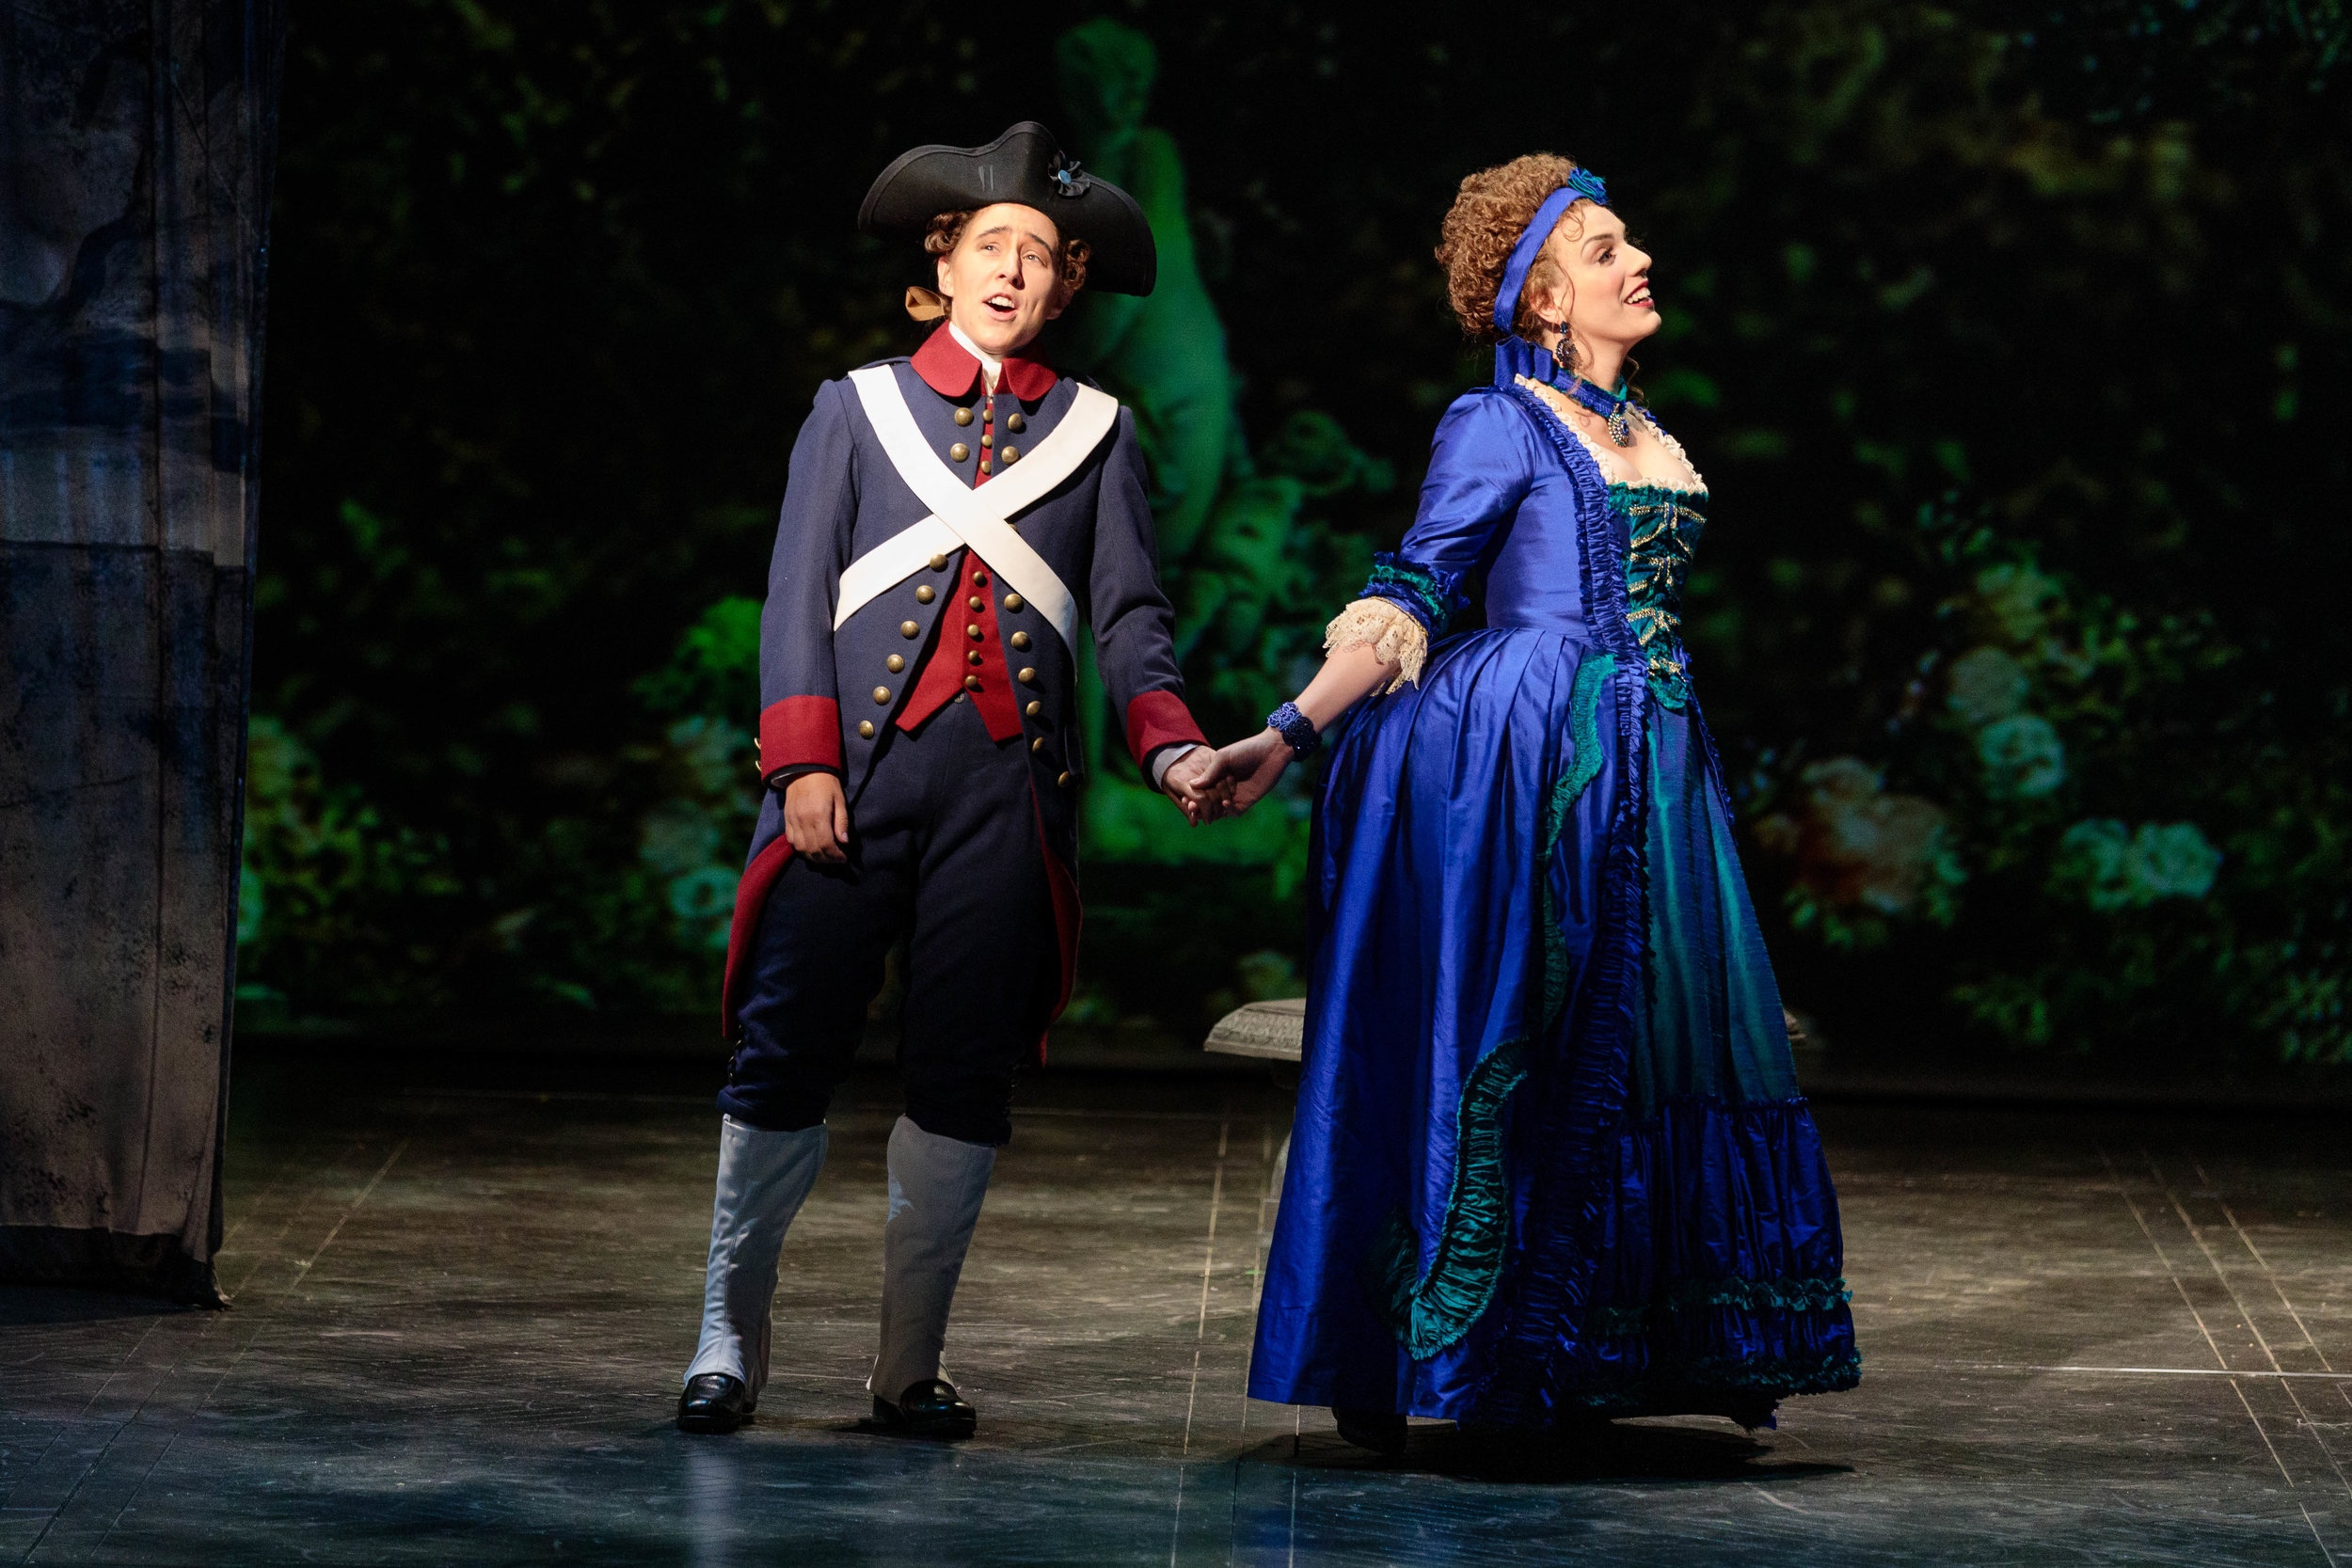 """The Glimmerglass Festival '19 - """"Standouts included the theatrically astute tenor Christian Sanders, as Bégearss, the cartoon villain in Beaumarchais's opera, who has two lengthy, vehement arias about vermin, and mezzo Katherine Maysek (Cherubino), who shone in her single scene, romancing Rosina ( Joanna Latini ) as part of the aforementioned love quartet."""" - The Wall Street Journal"""" … soprano Joanna Latini made an elegant Rosina. Her duet with Cherubino (mezzo Katherine Maysek), """"Look at the green here in the glade"""", was ravishing."""" - BachTrack""""Joanna Lantini and Katherine Maysek stood out as Rosina and Cherubino."""" - ConcertoNet""""Katherine Maysek's substantial, throbbing mezzo served the role of Cherubino well, and she paired luminously with Ms. Latini in a fetching duet."""" - OperaTodayPhoto: Karli Cadel"""